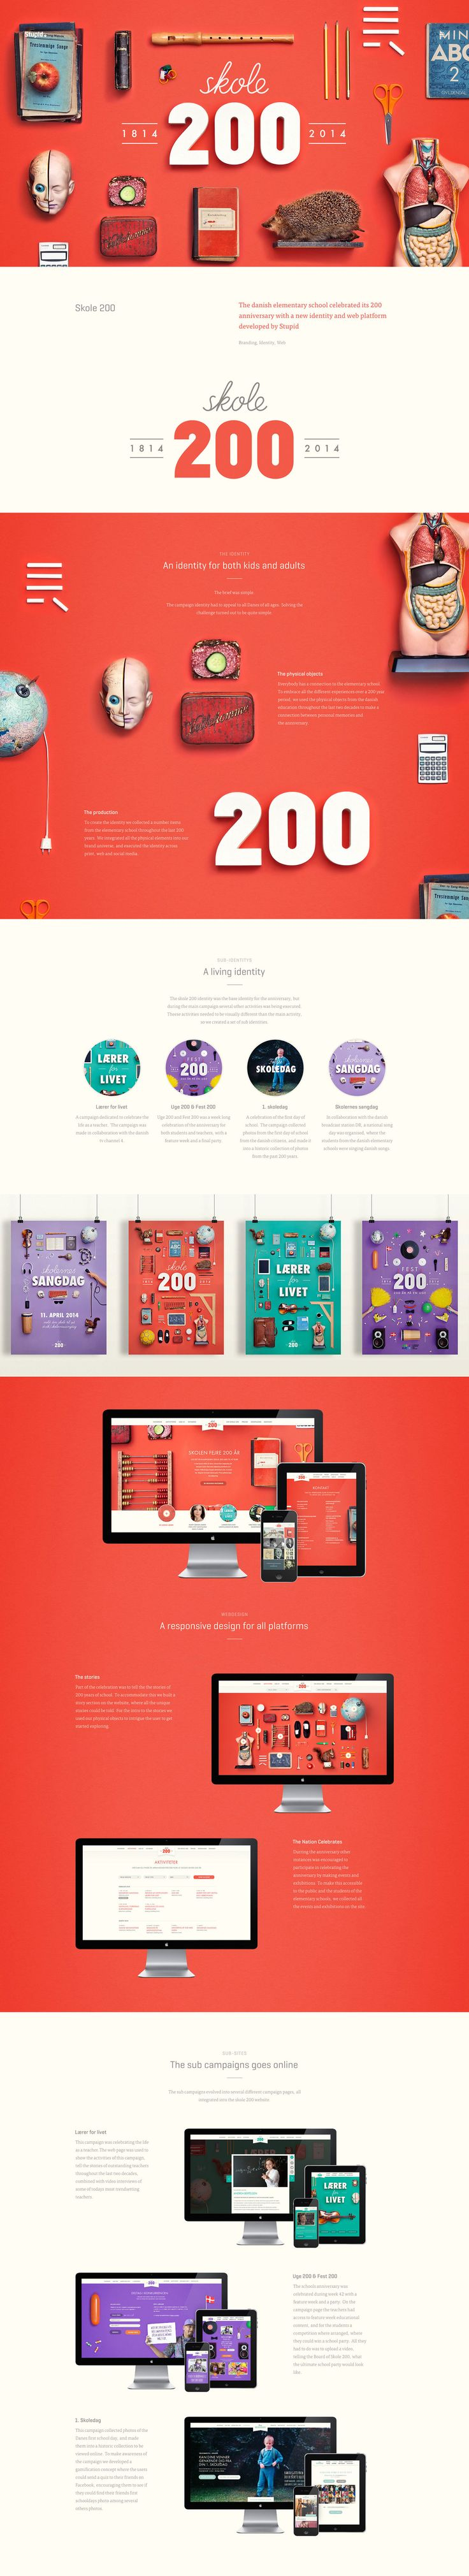 Skole 200 on Behance